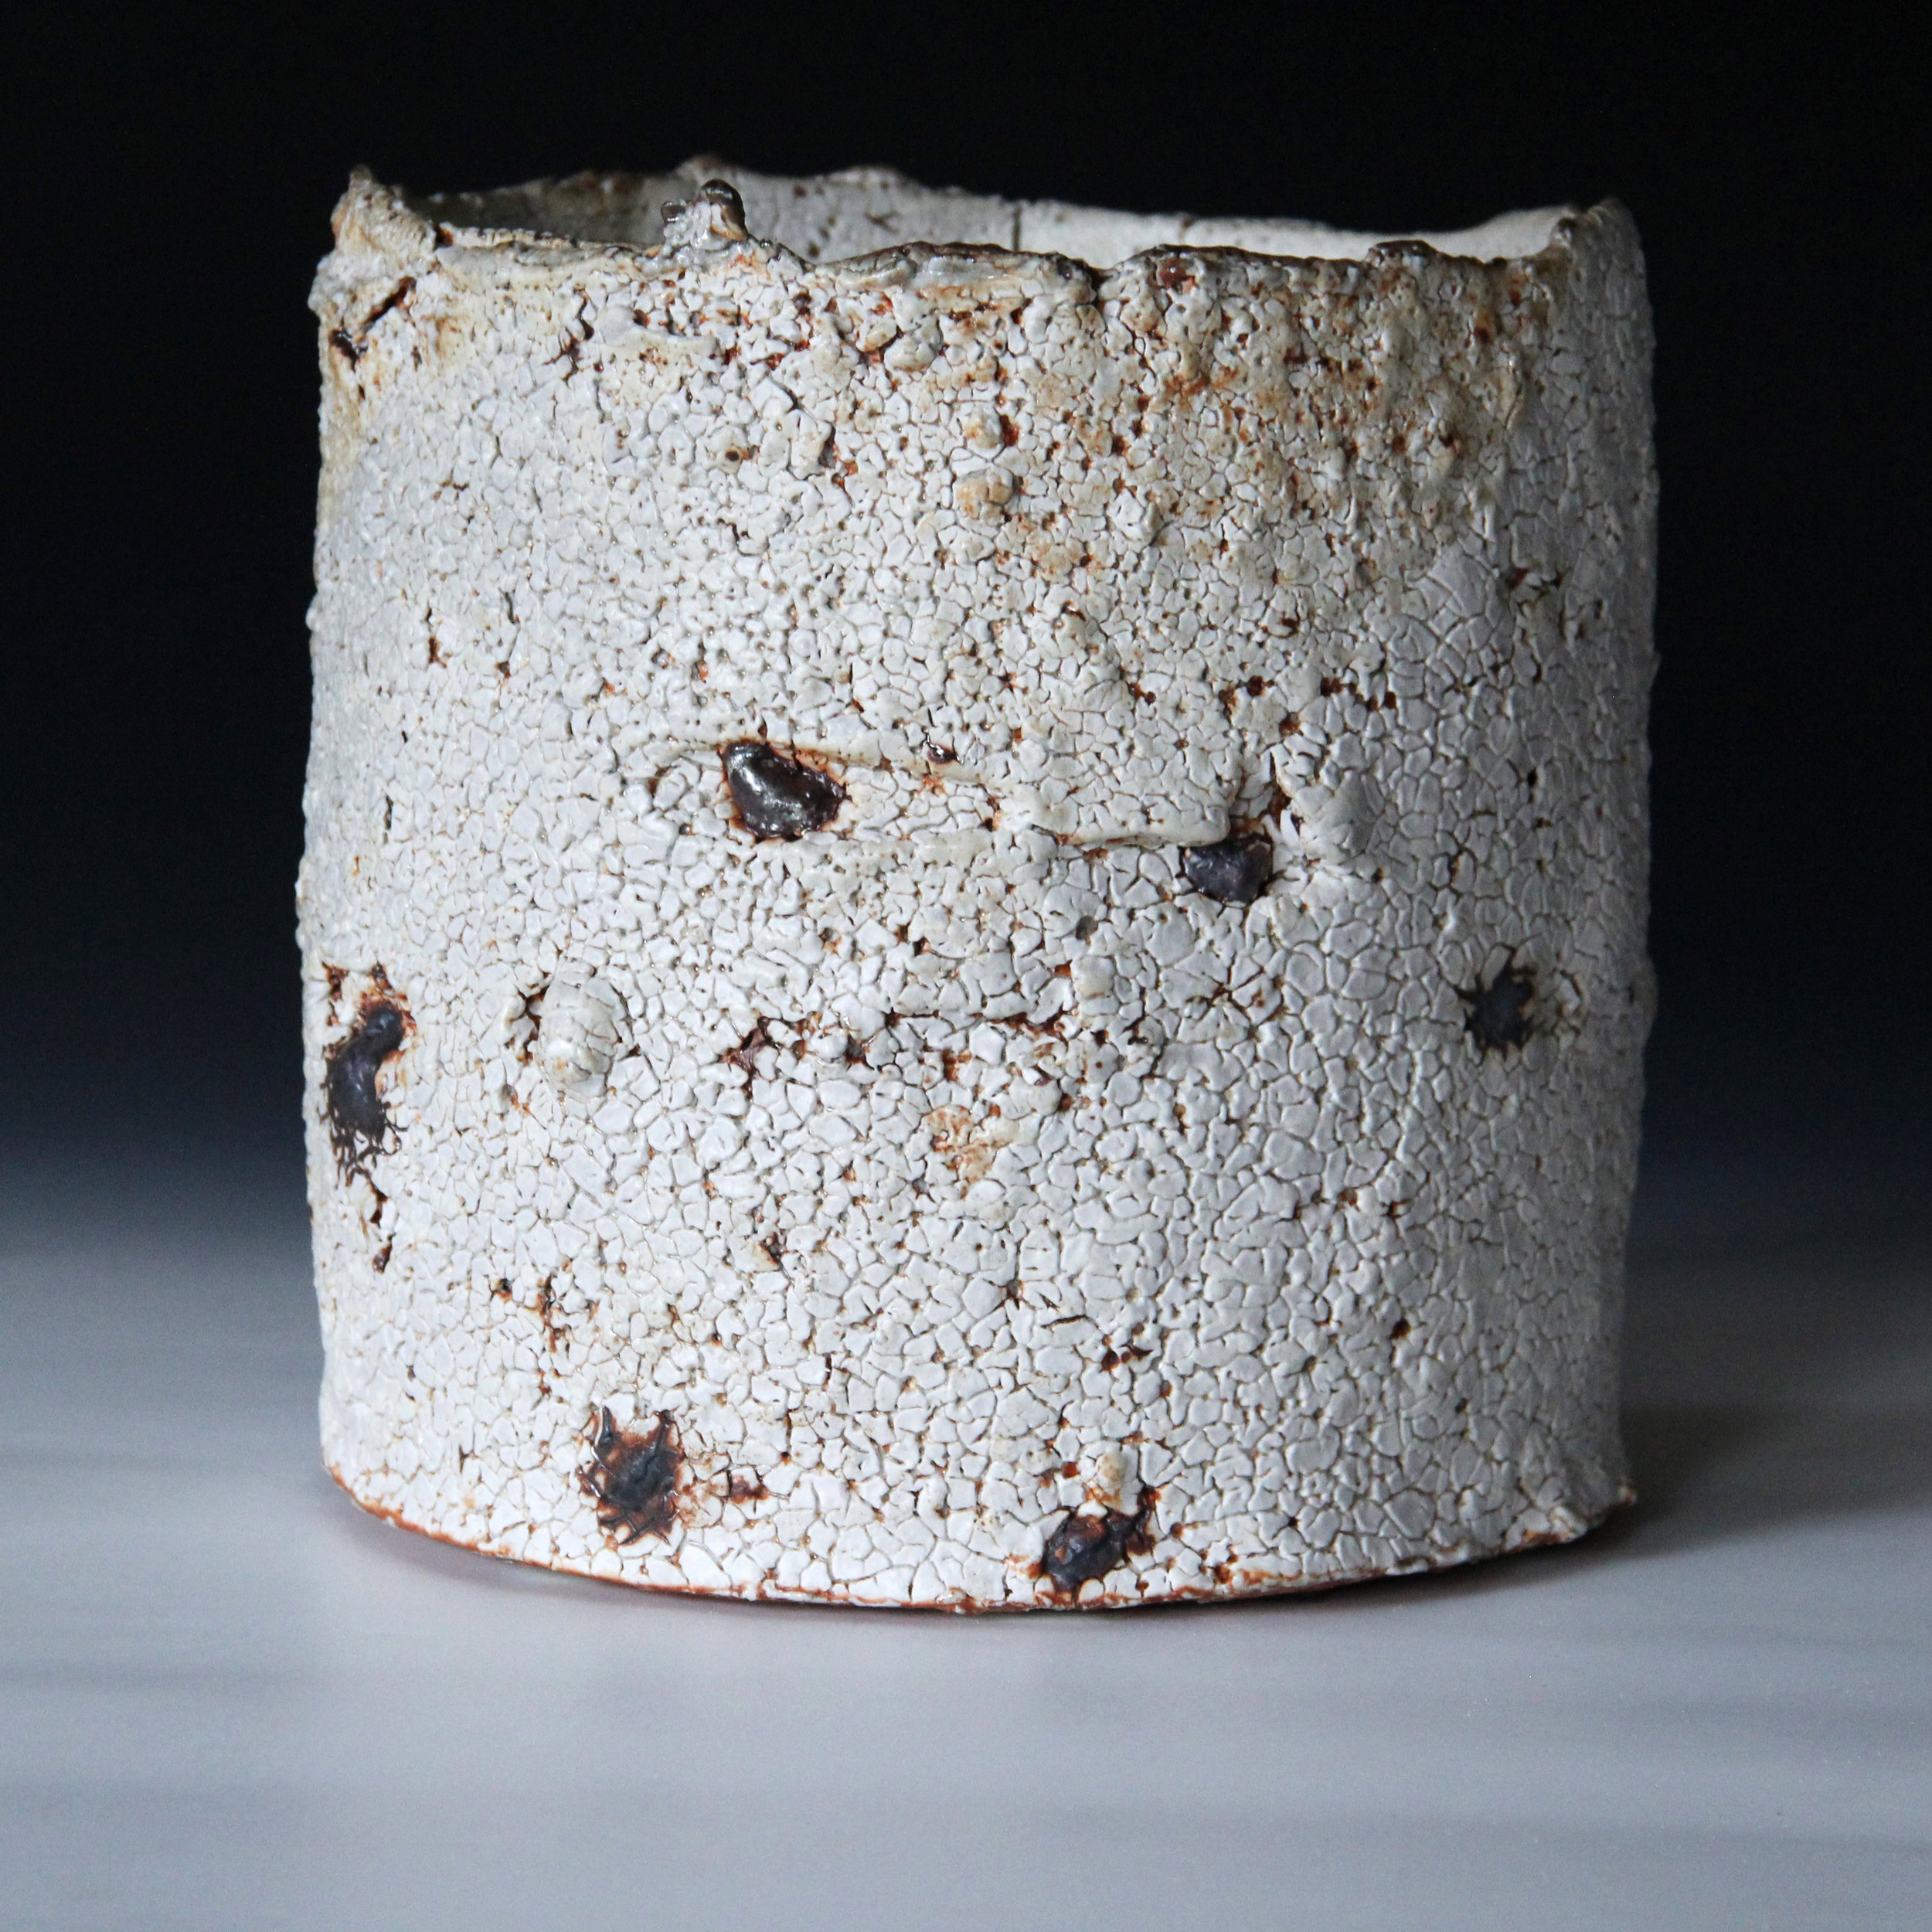 1. Sandy Lockwood 'Subduction Series' - woodfired and saltglazed - 23 x 24cm IMG_0392 (2).JPG